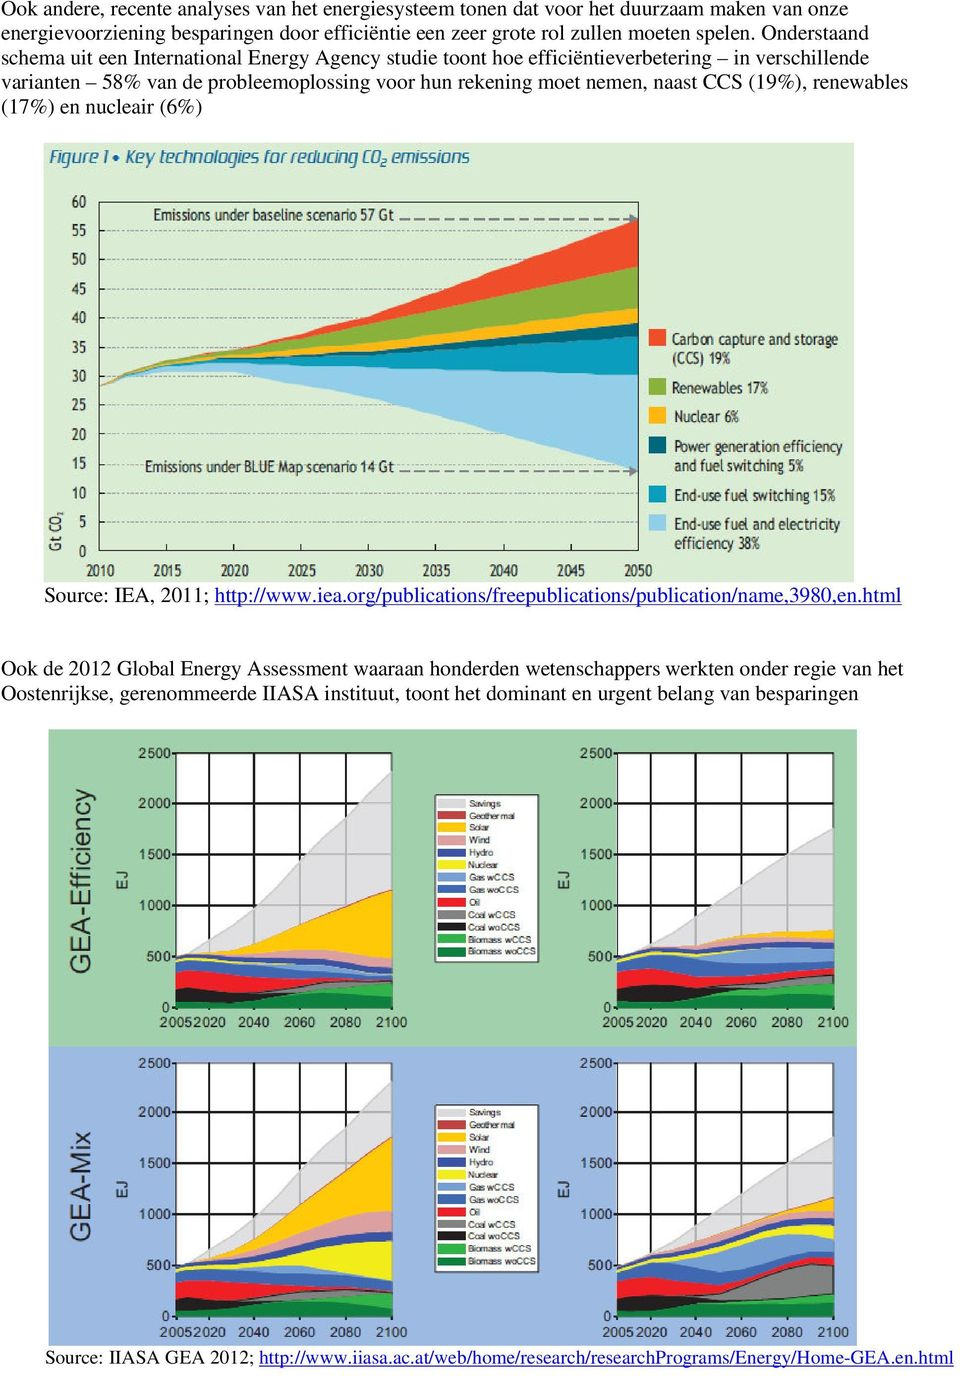 renewables (17%) en nucleair (6%) Source: IEA, 2011; http://www.iea.org/publications/freepublications/publication/name,3980,en.